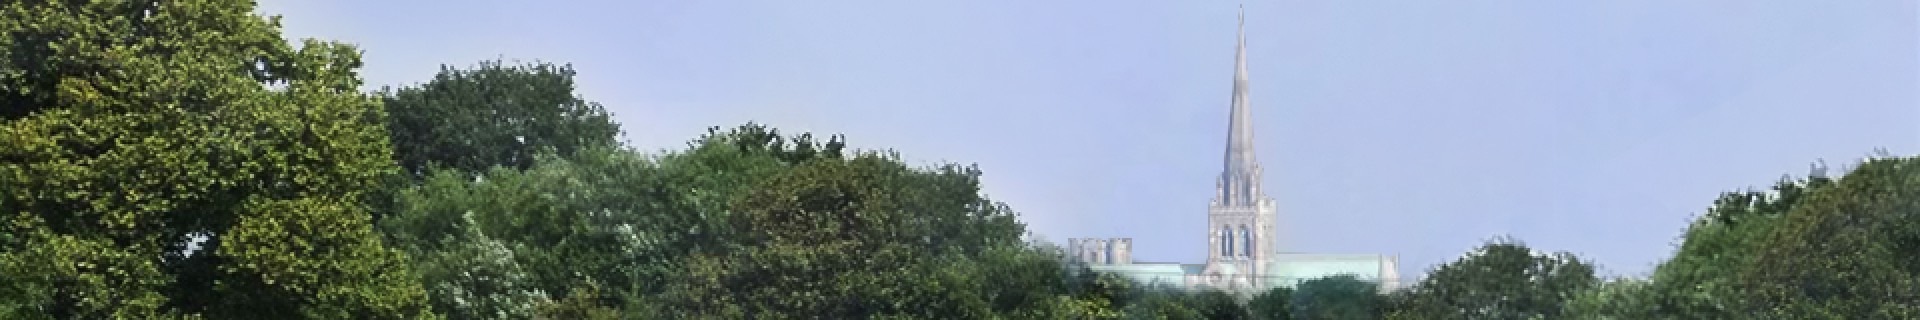 Banner image for Chichester